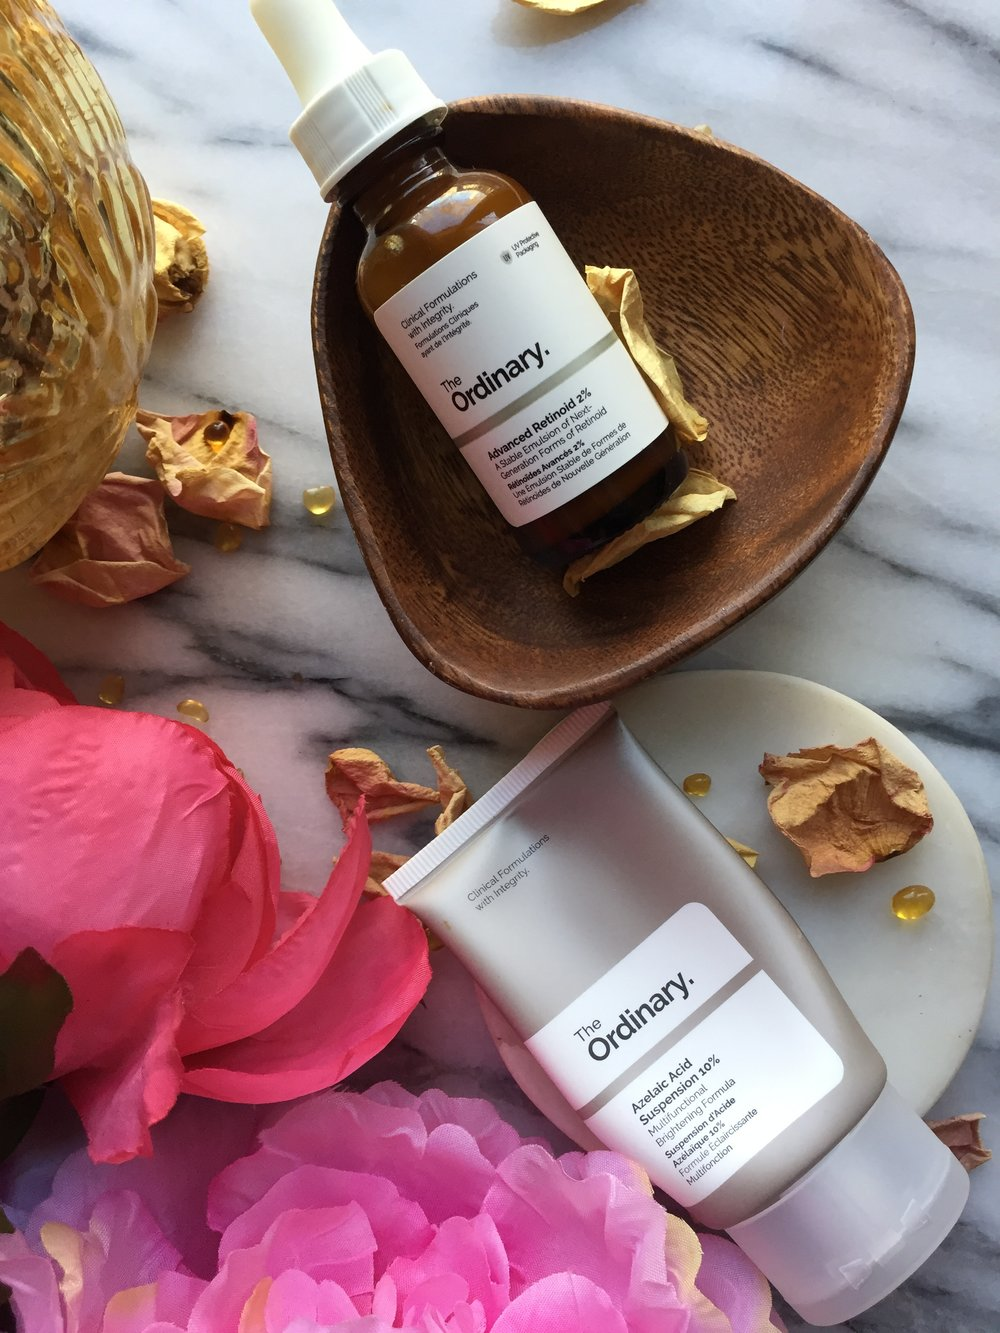 The Ordinary Azelaic Acid Suspension 10% and The Ordinary Granactive Retinoid 2% Emulsion